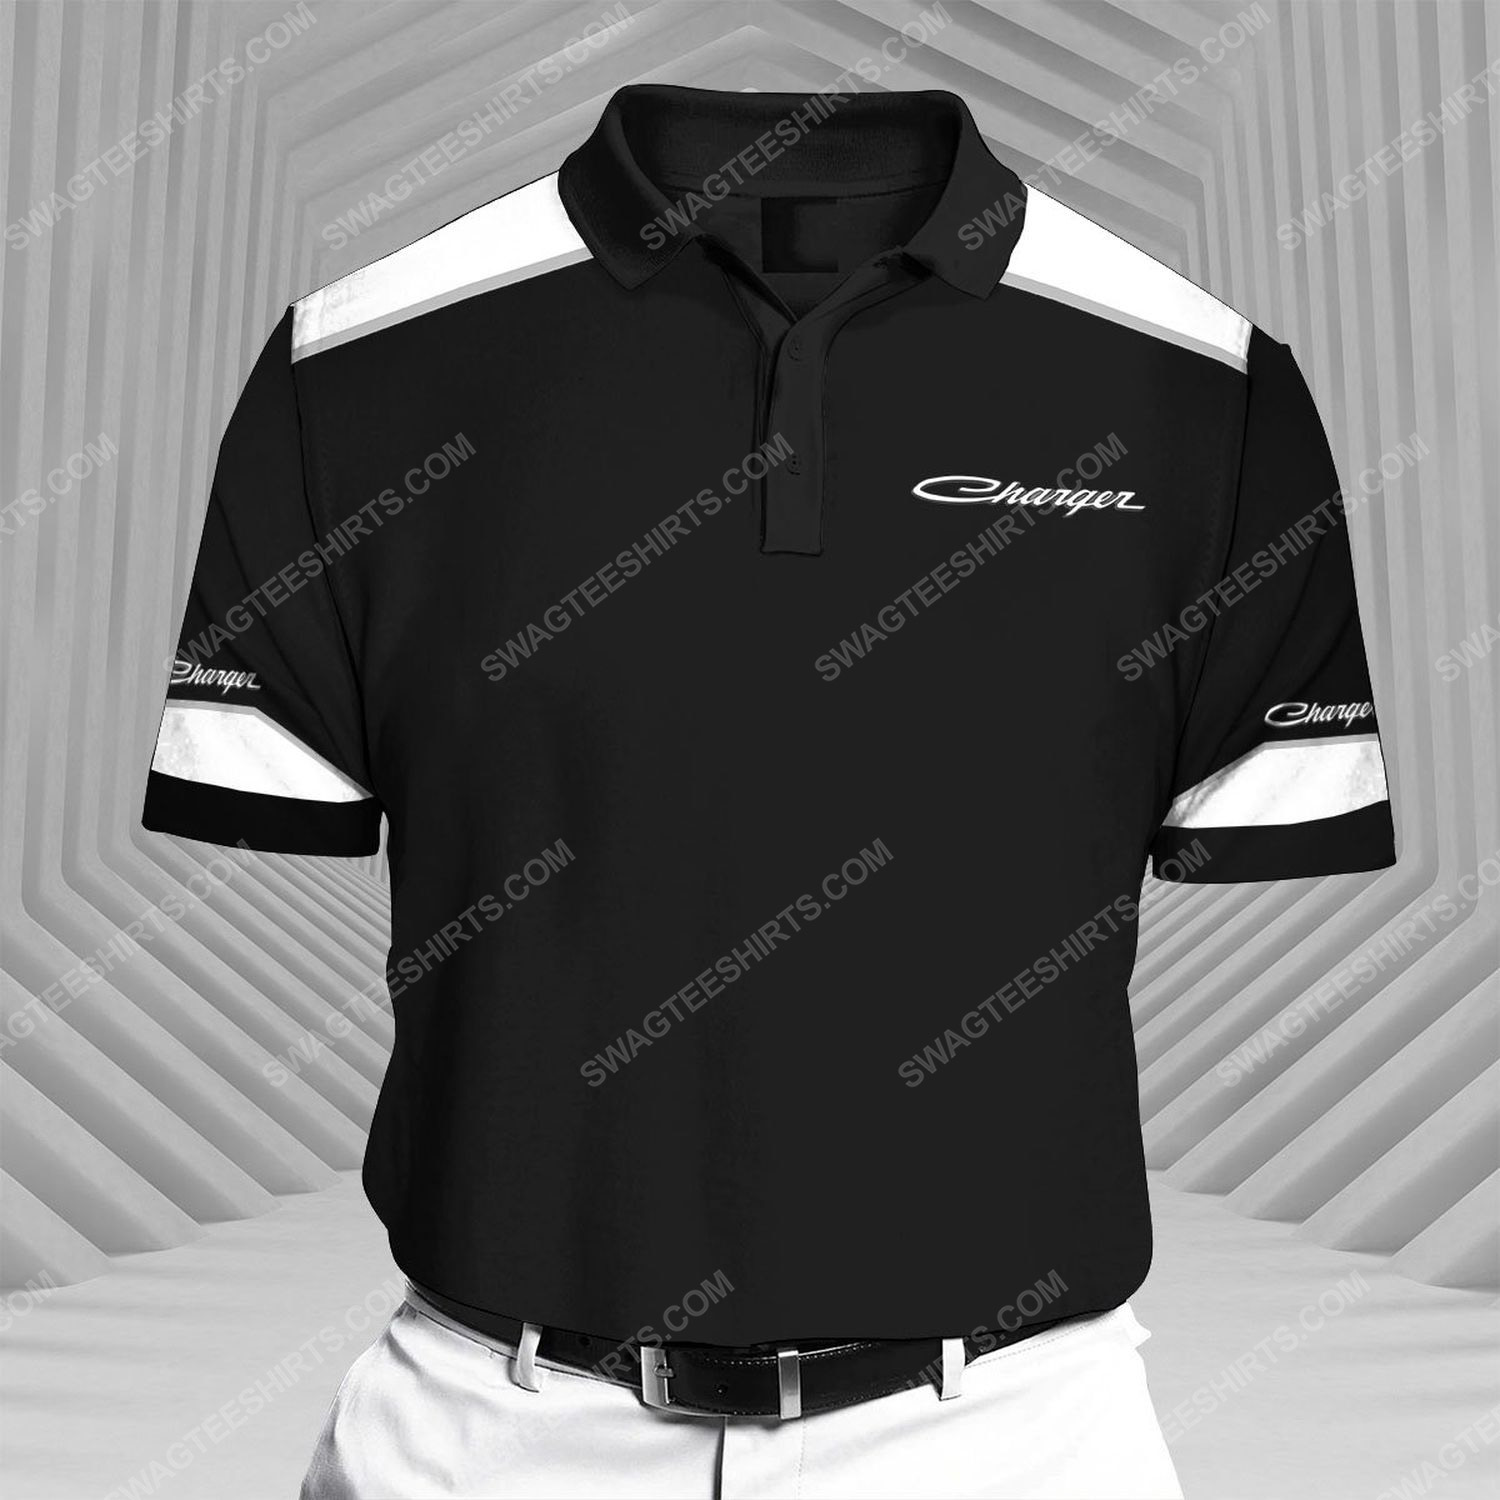 Dodge charger sports car all over print polo shirt 1